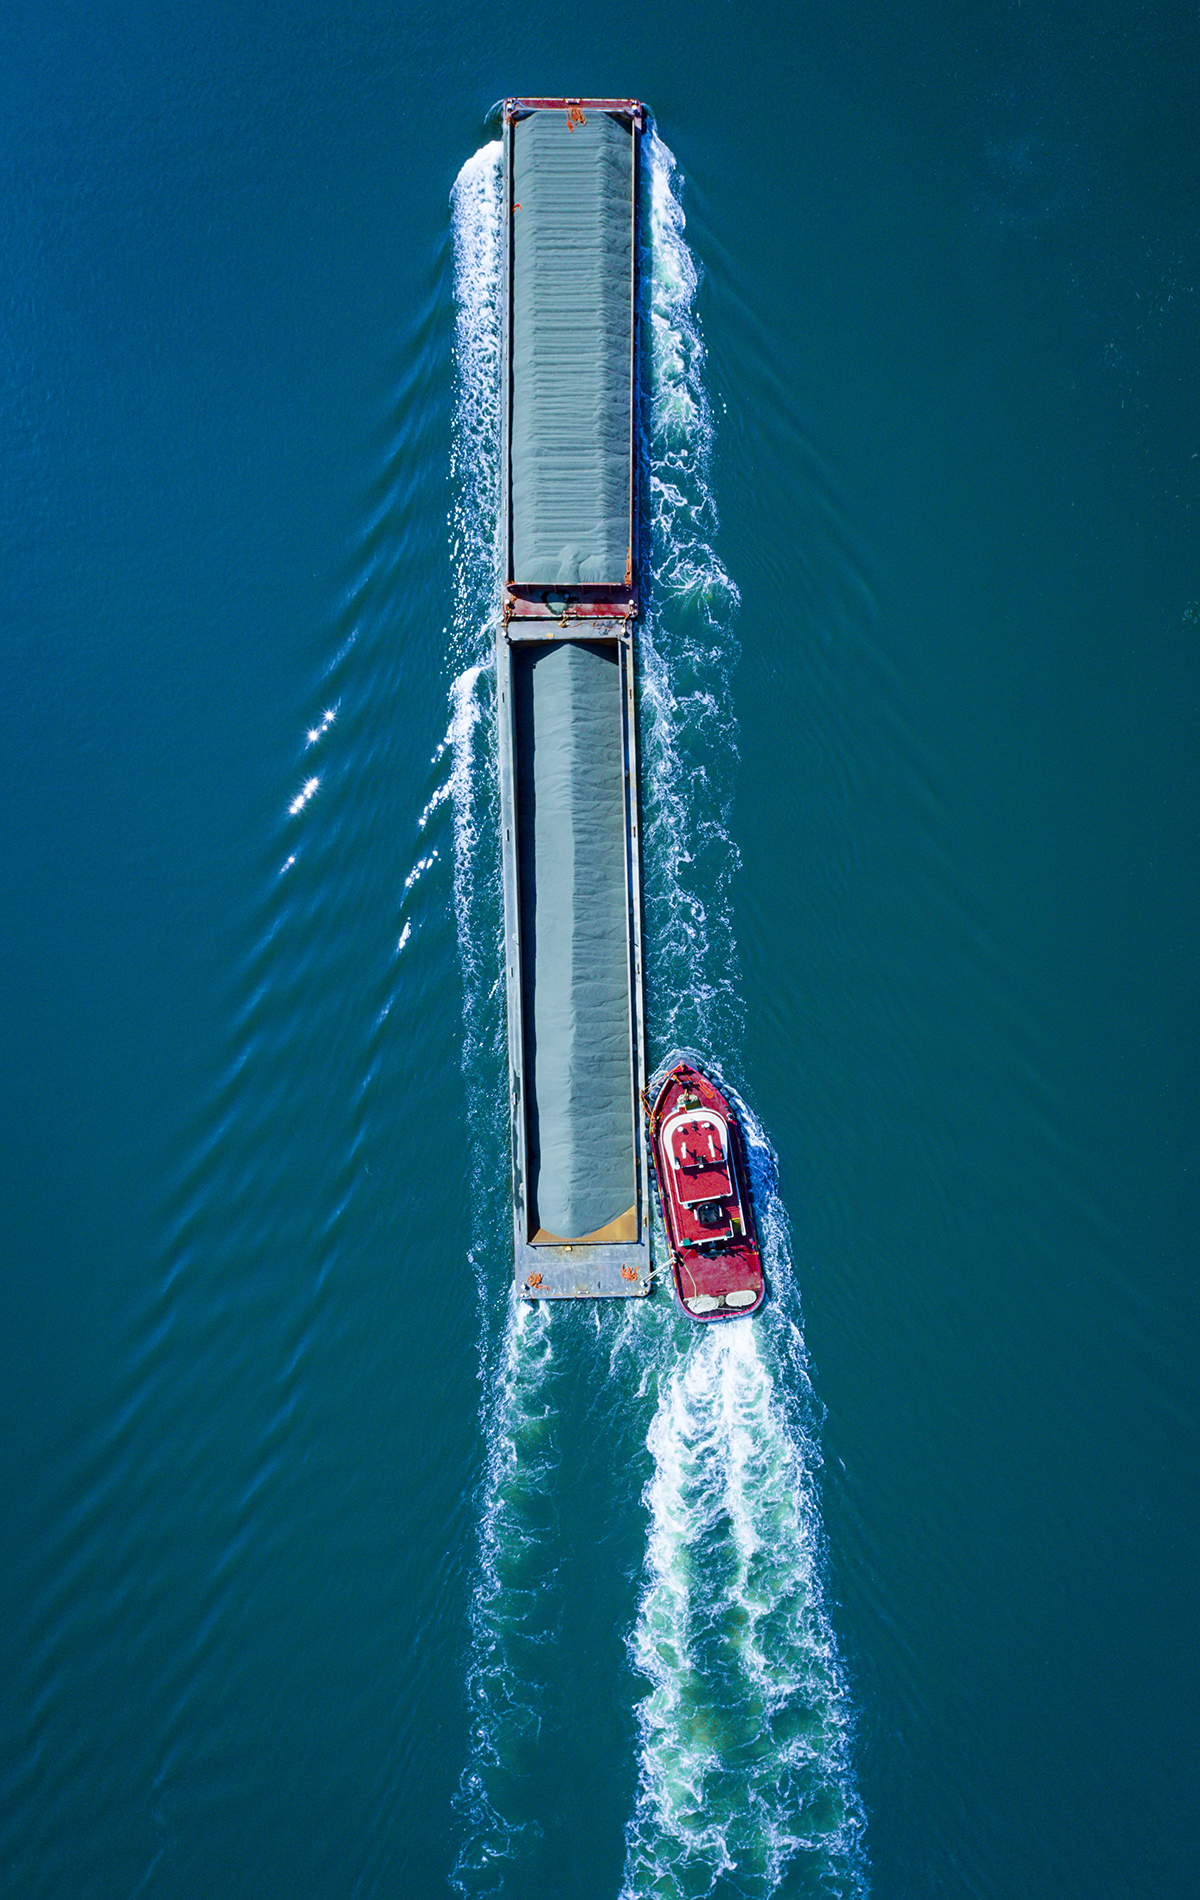 Drone Photograph Nadir angle of a barge going up the Arthur Kill Waterway in New Jersey